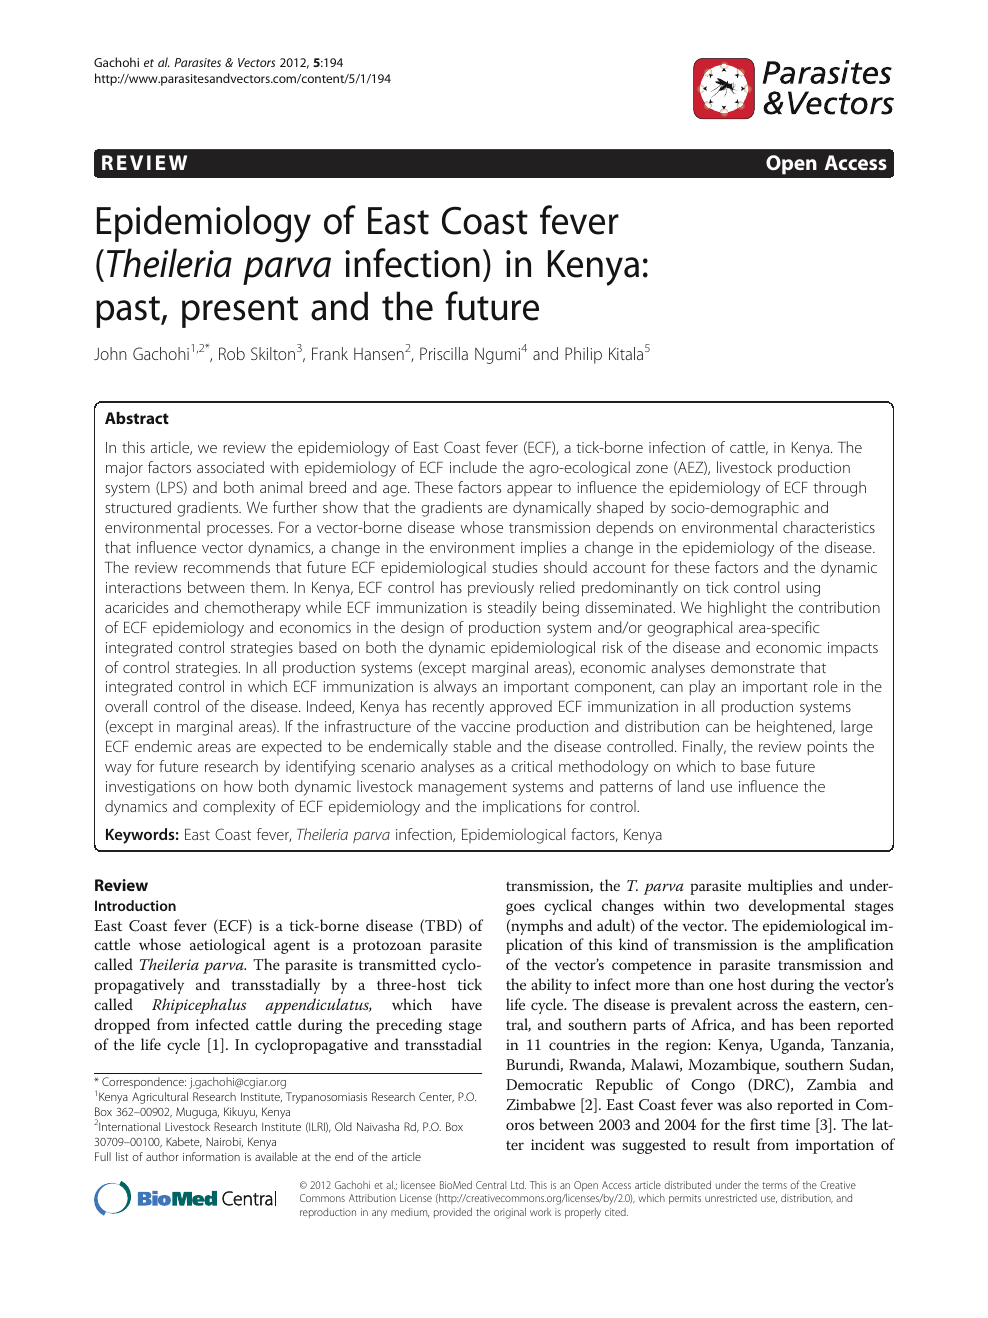 Epidemiology of East Coast fever (Theileria parva infection